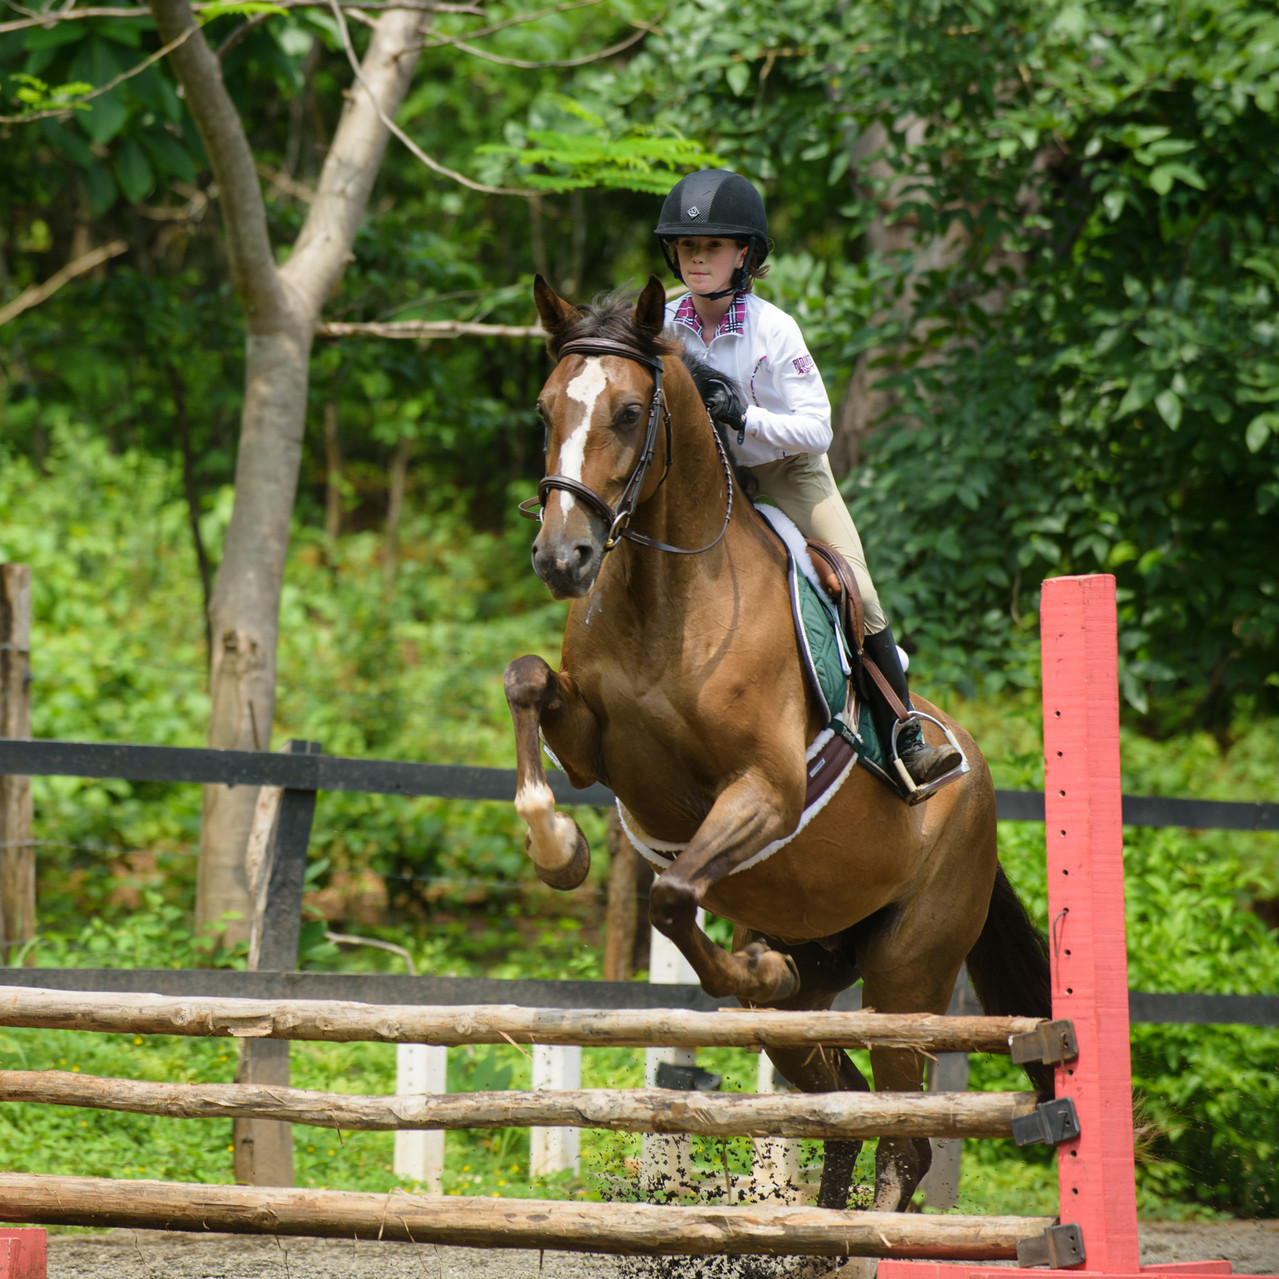 Ready, set, jump at Costa Rica Equestrian Vacations